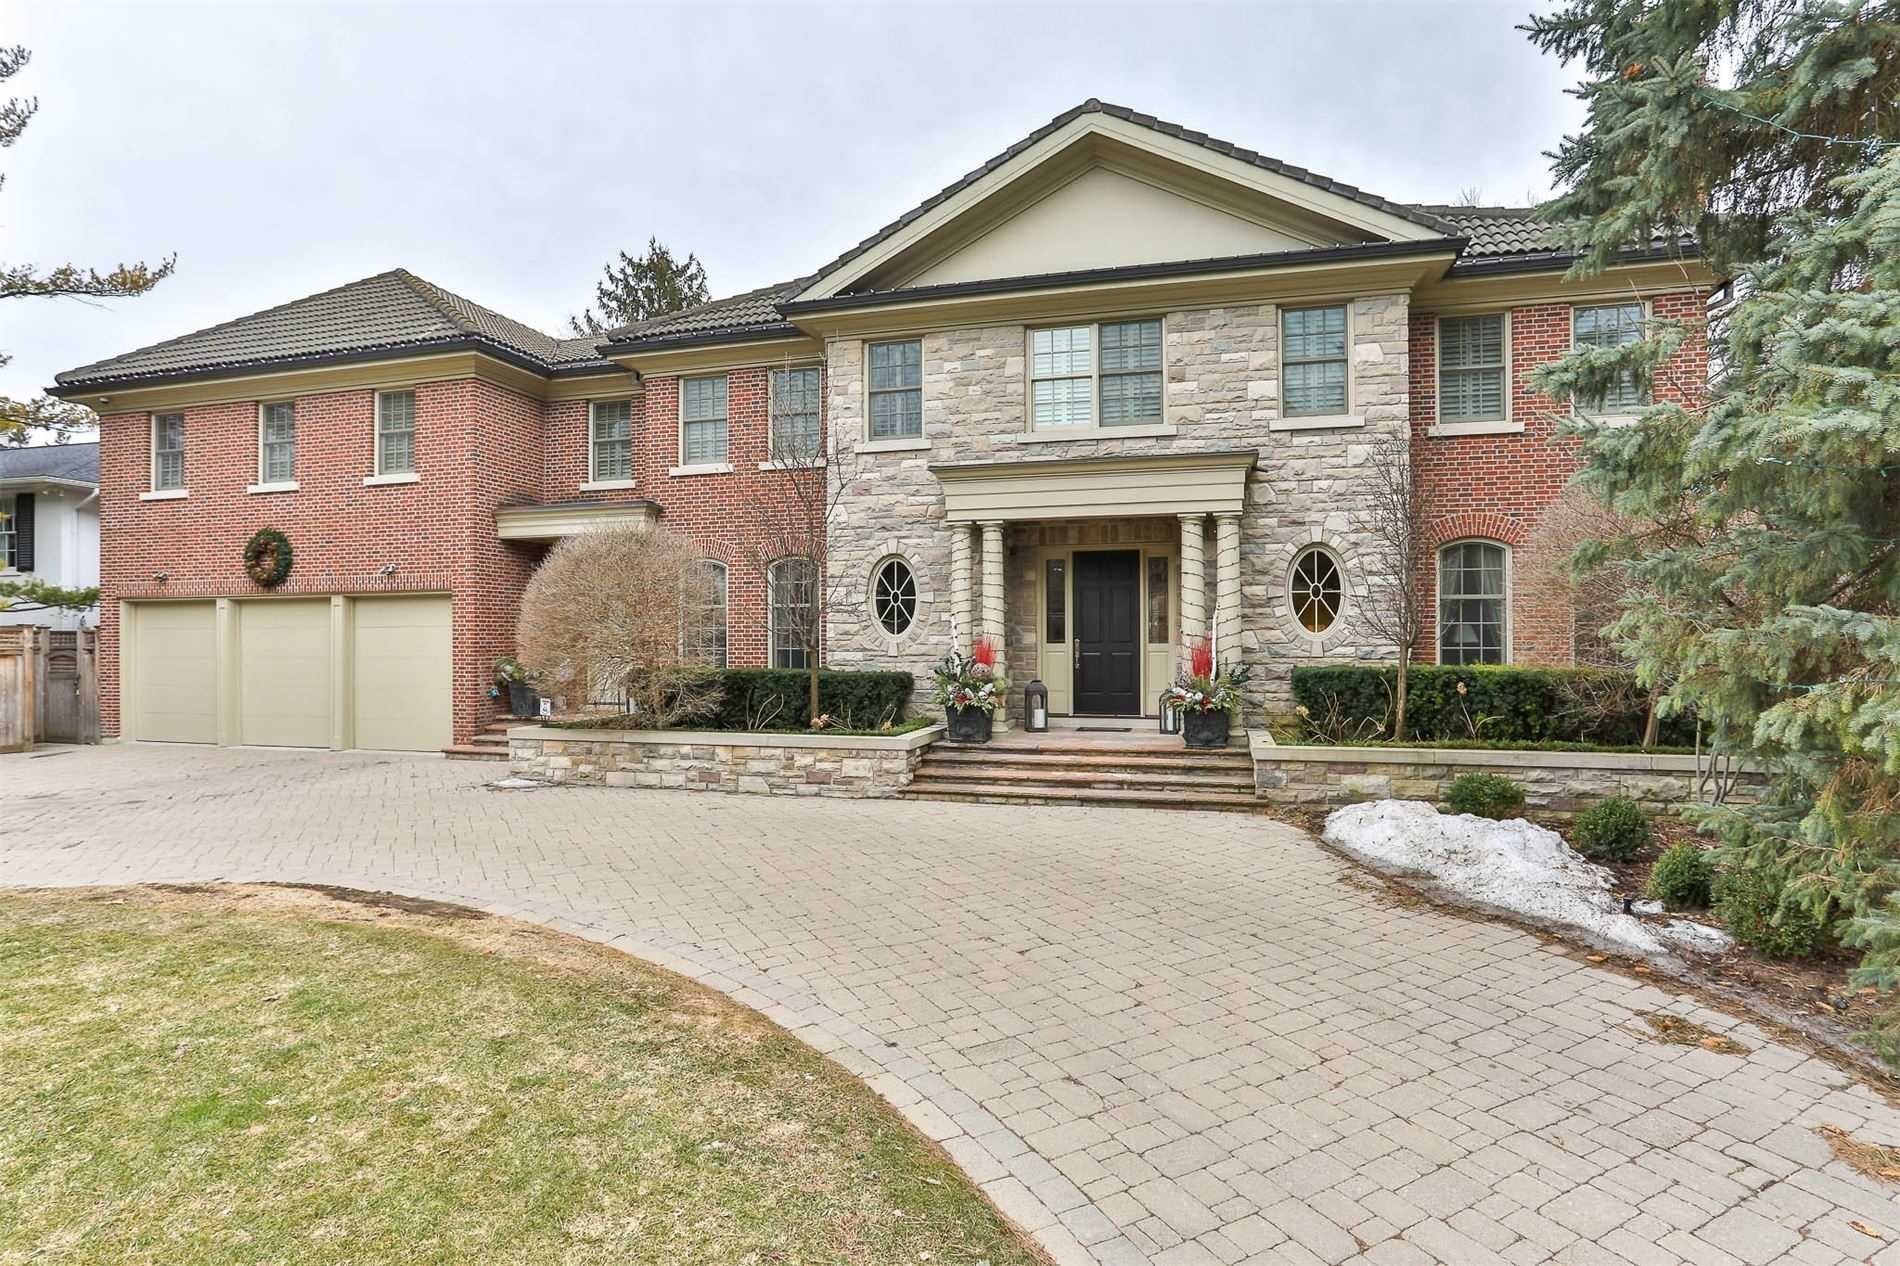 15 Valleyanna Dr, Toronto, Ontario M4N1J7, 6 Bedrooms Bedrooms, 13 Rooms Rooms,11 BathroomsBathrooms,Detached,For Sale,Valleyanna,C5164120